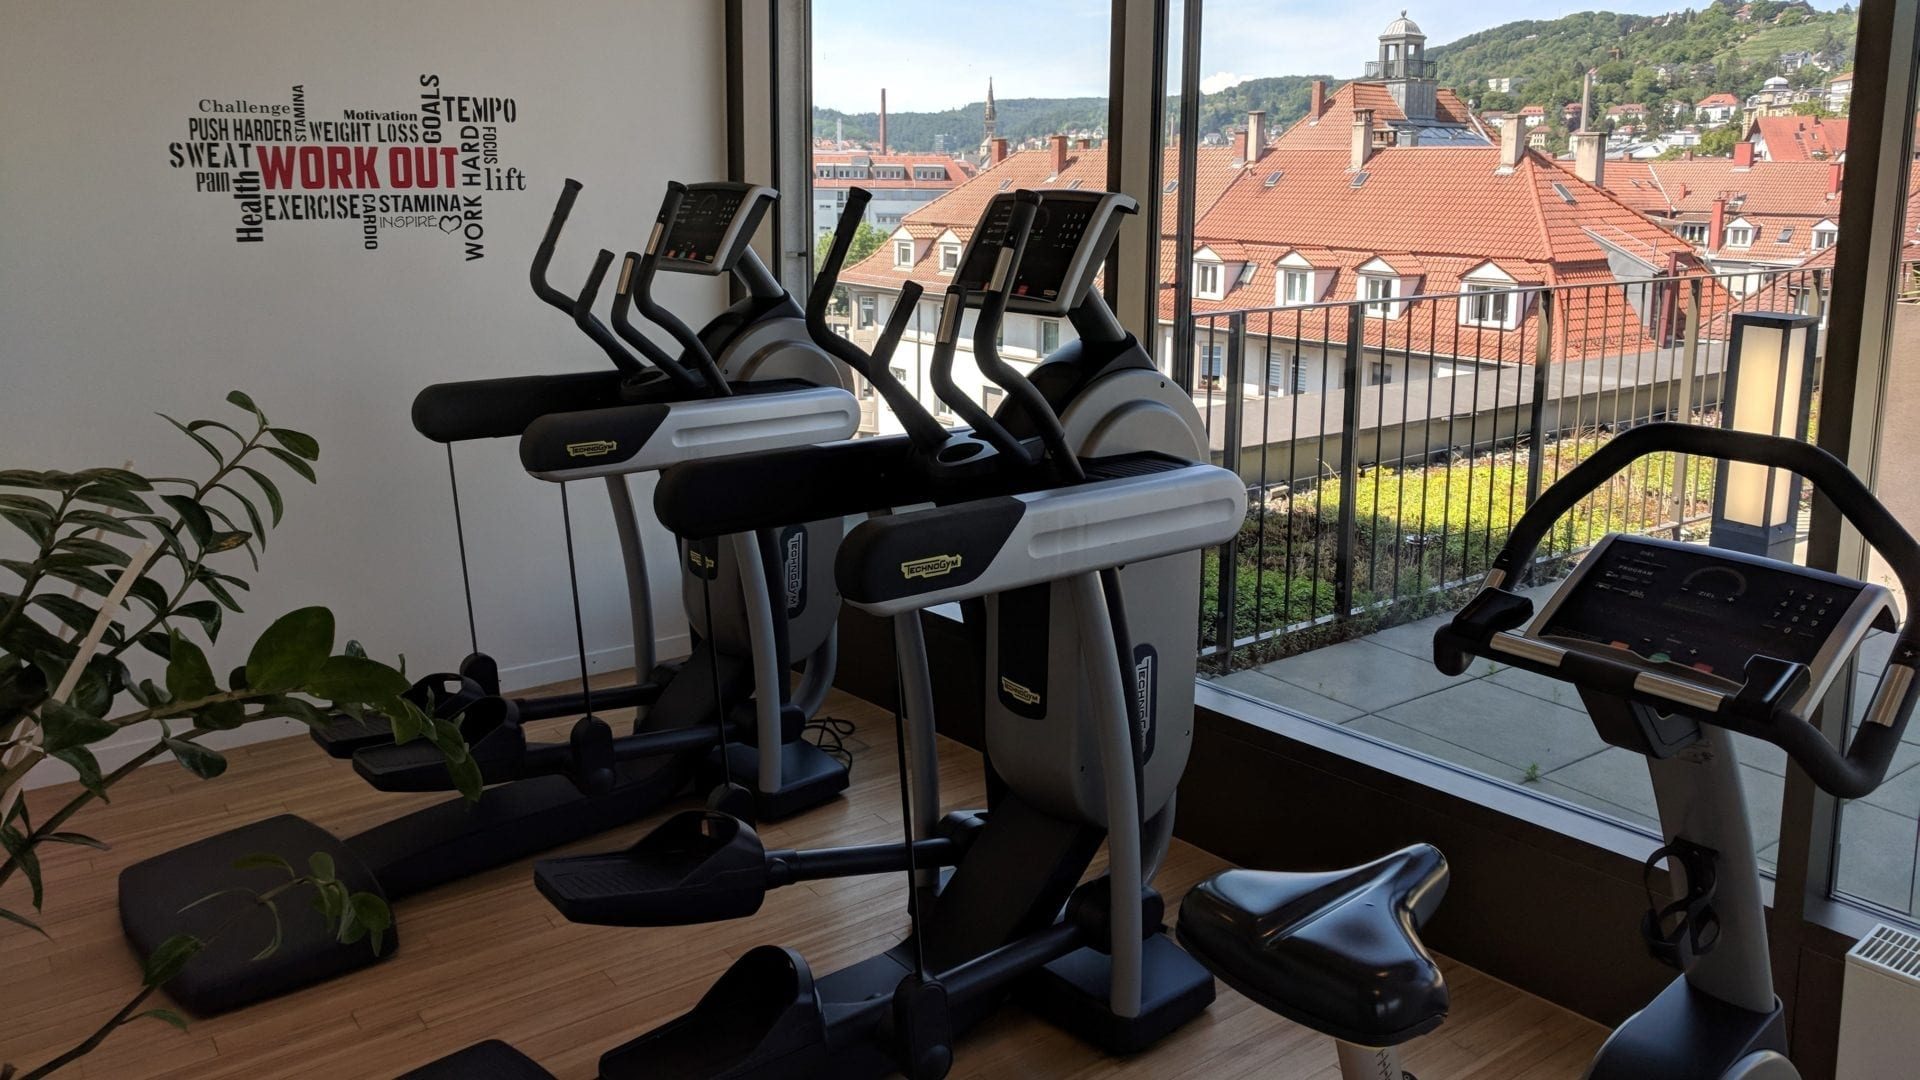 Park Inn Stuttgart Gym (2)